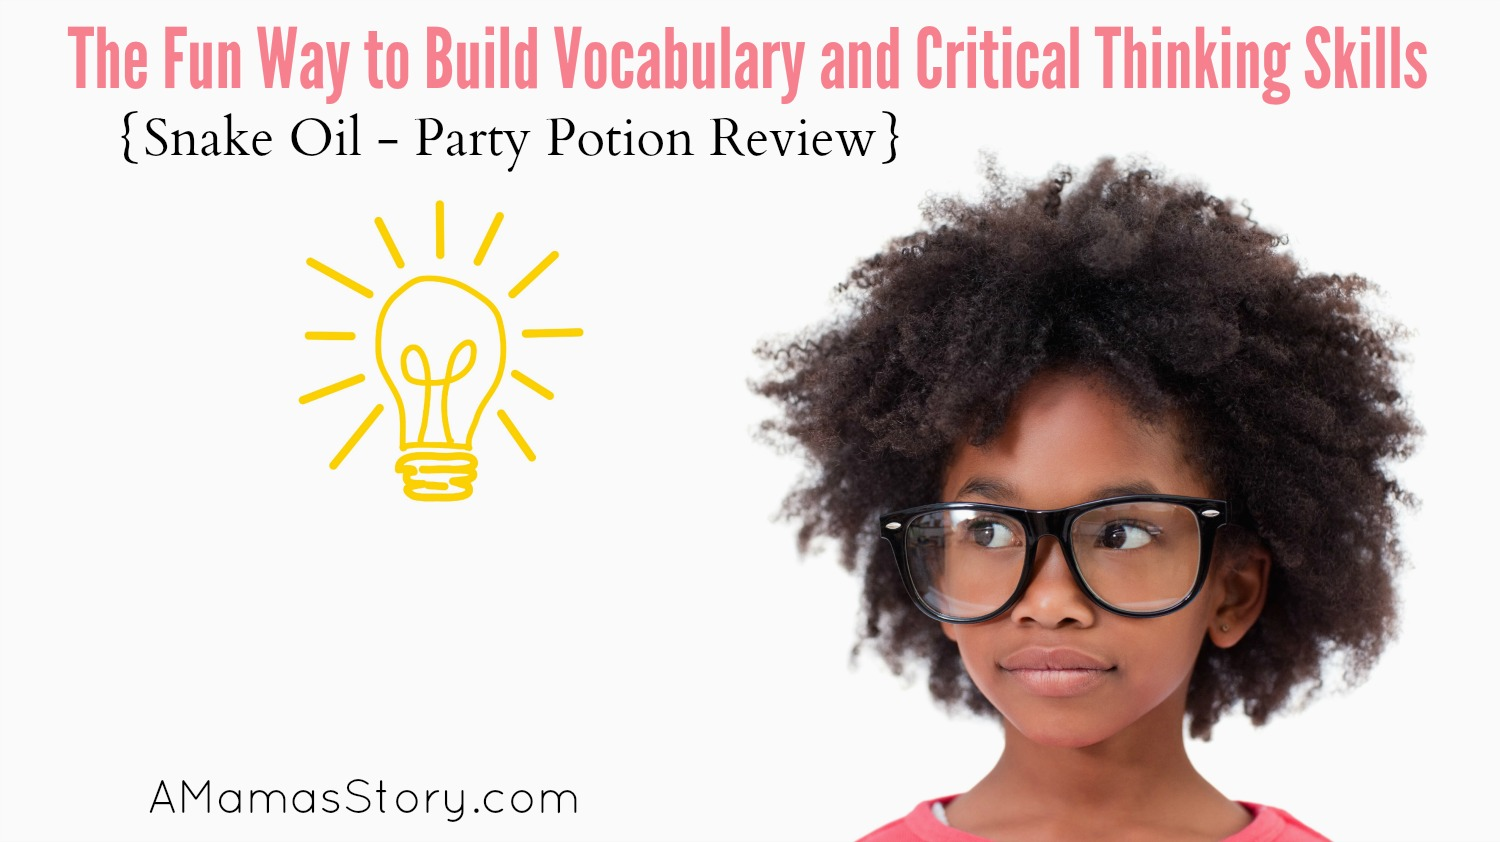 The Fun Way to Build Vocabulary and Critical Thinking Skills {Snake Oil – Party Potion Review}